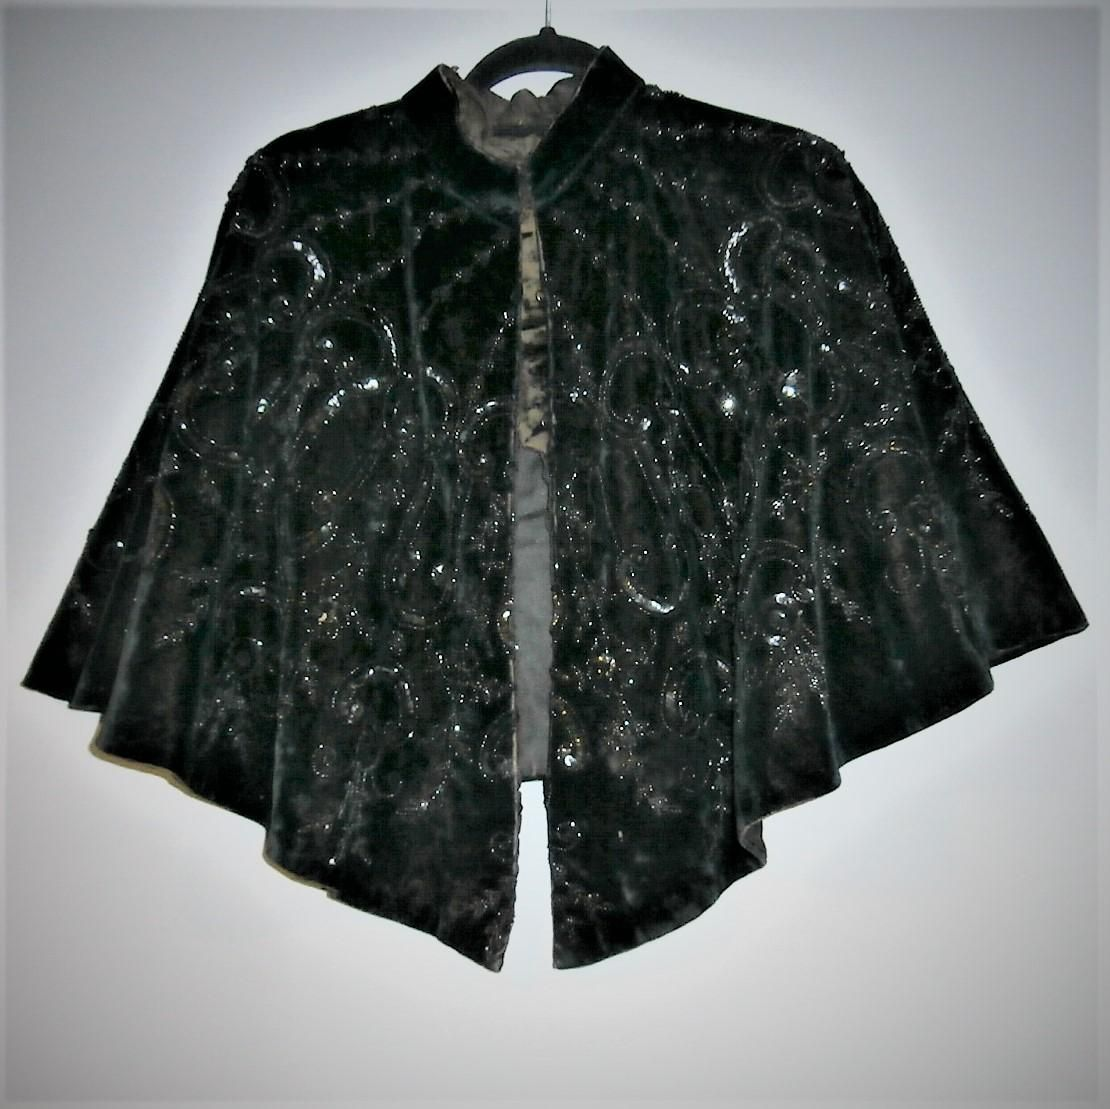 Stunning Black Velvet Bead And Sequin Victorian Cape Cloak Vintage Clothes Mannequins Hemswell Antique Centres